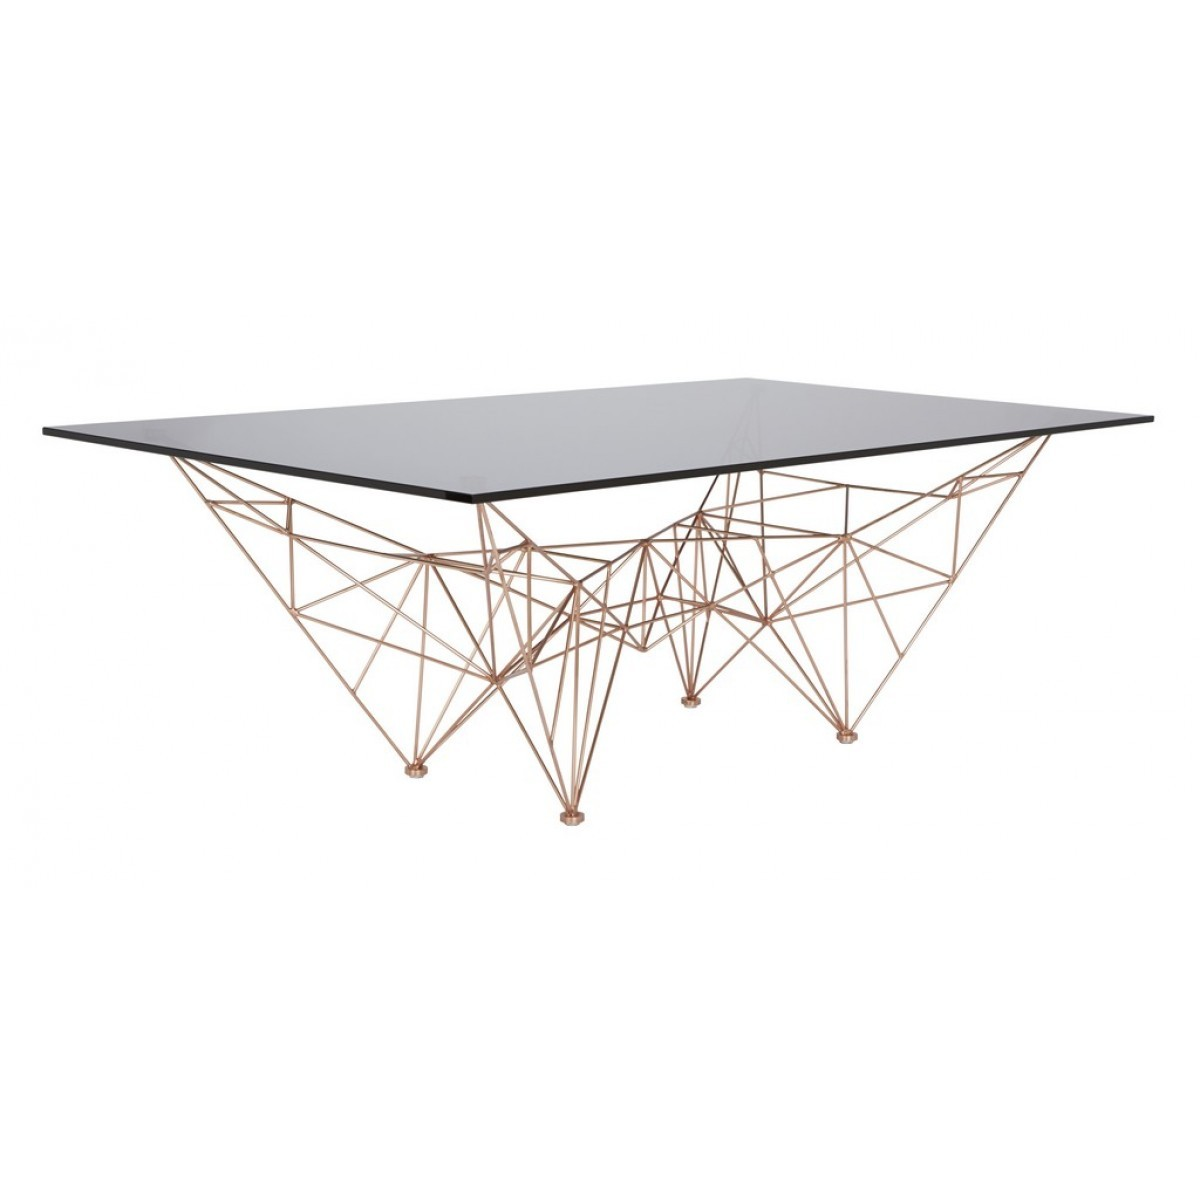 Tom Dixon Couchtisch Tom Dixon Pylon Coffee Table Tisch Couchtisch